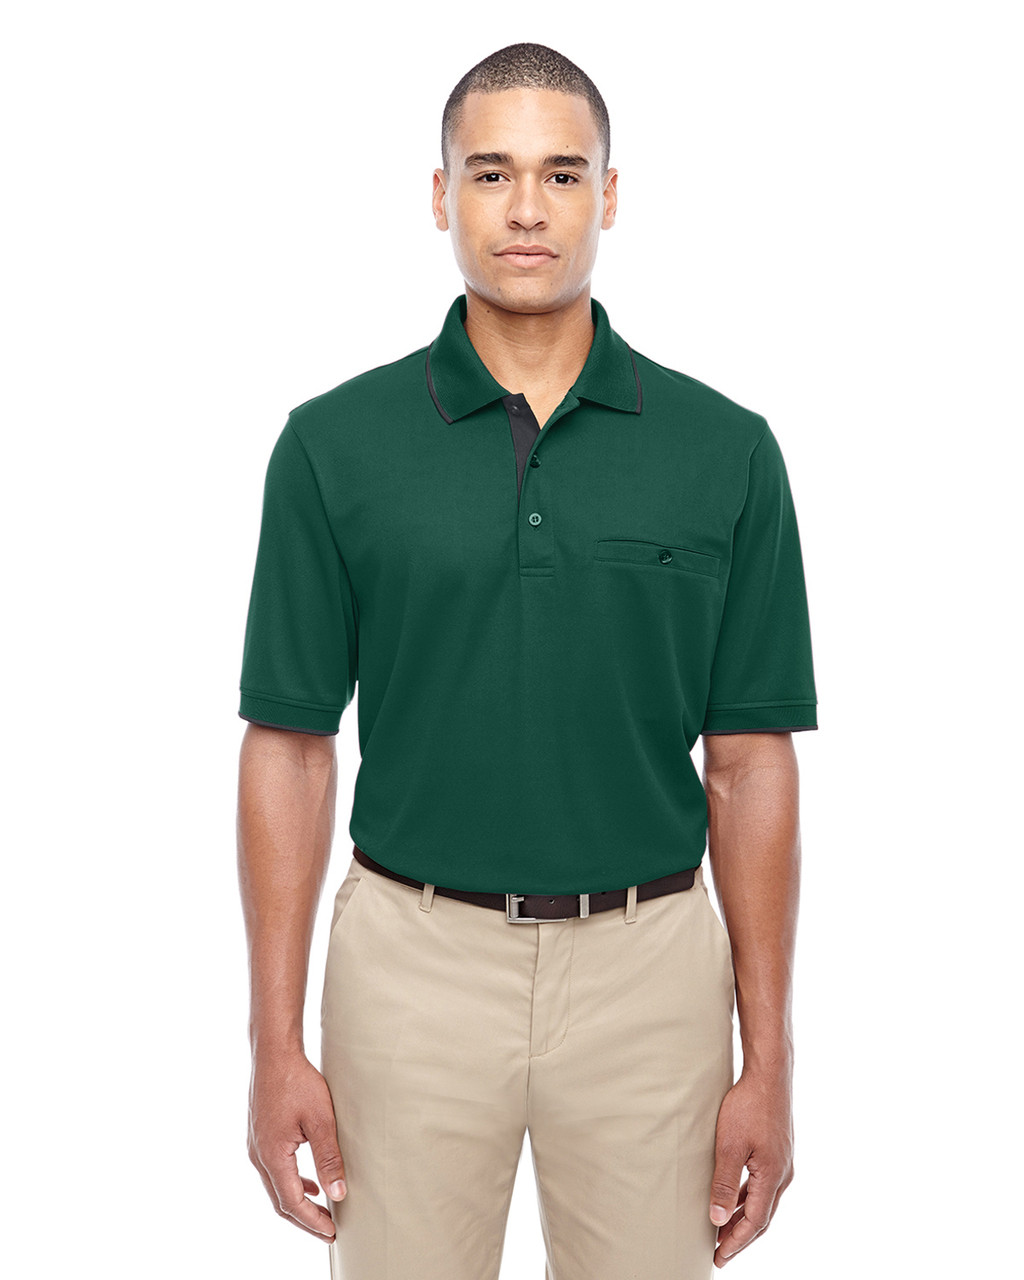 Forest 88222 Ash City - Core 365 Men's Motive Performance Pique Polo Shirt with Tipped Collar   Blankclothing.ca